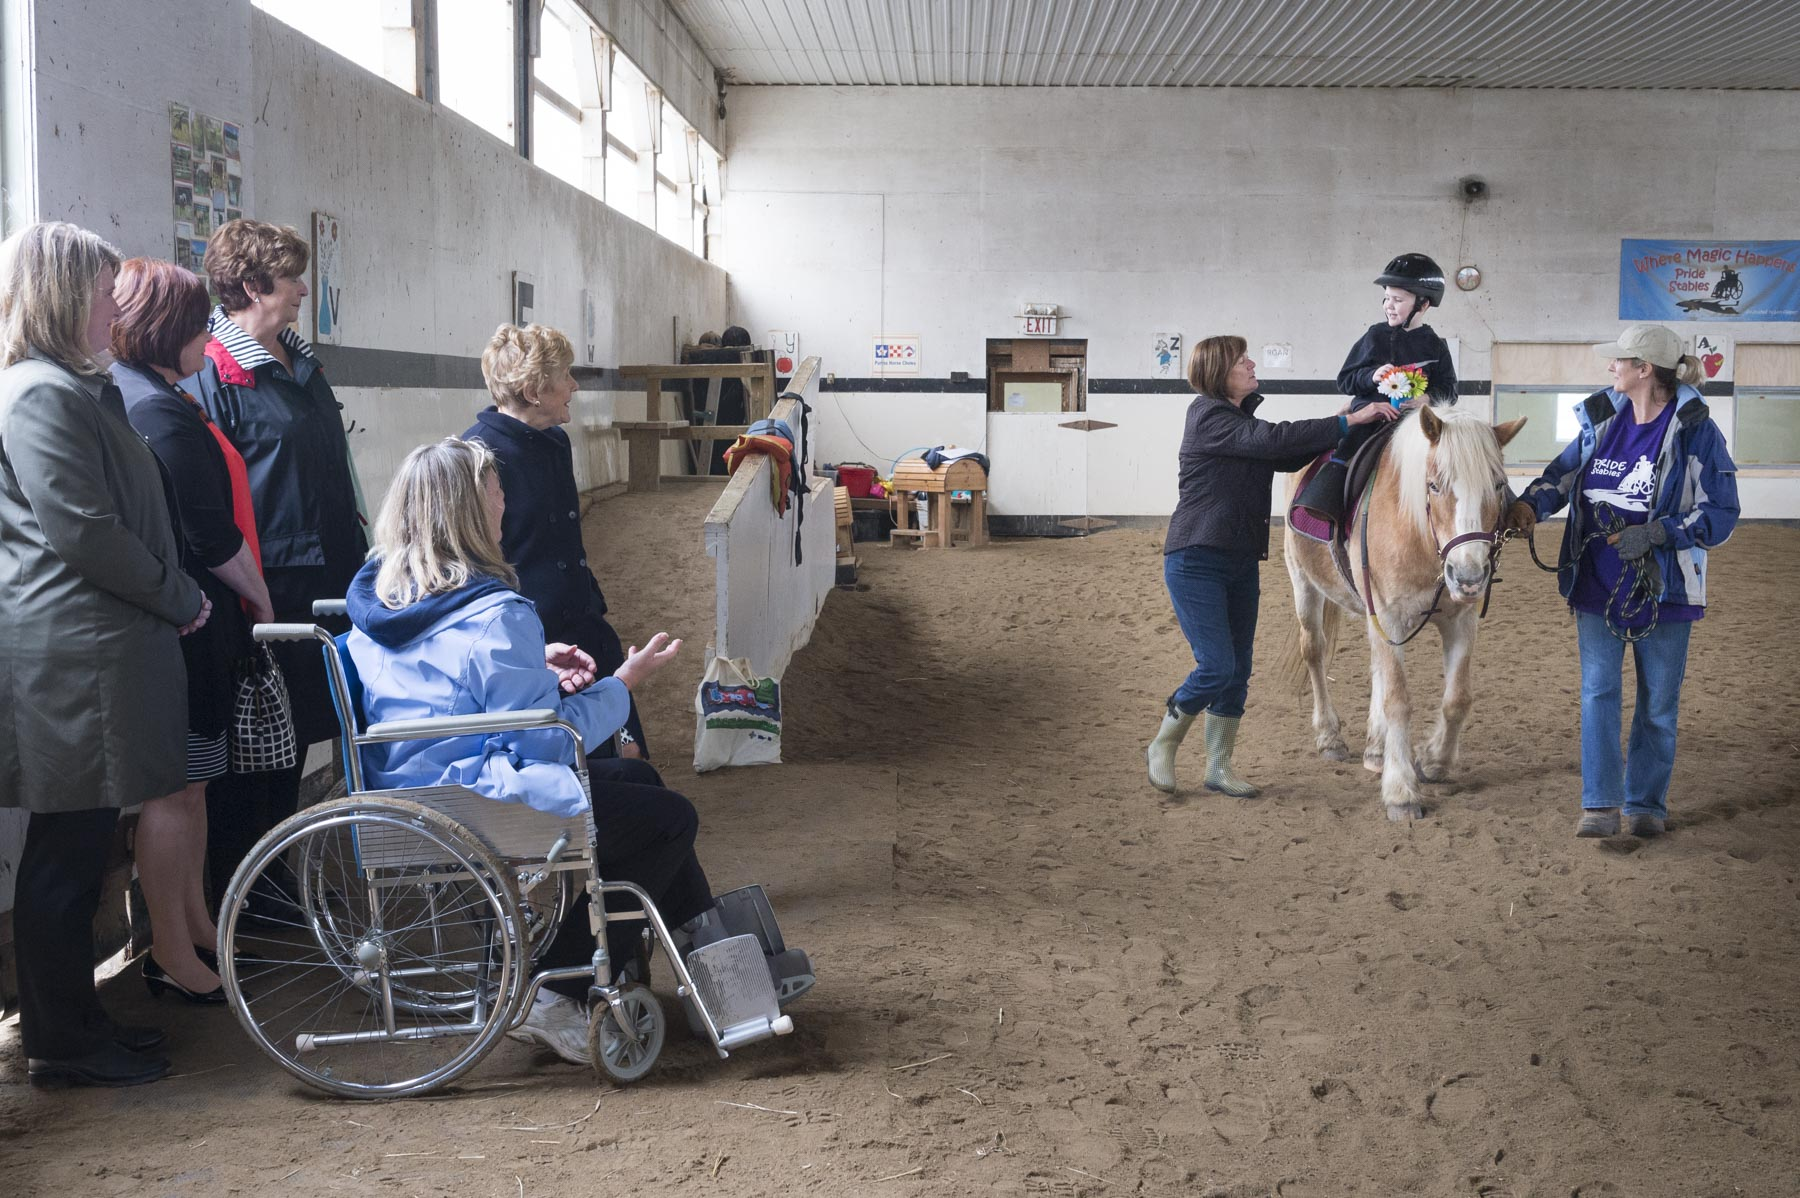 Mrs. Johnston attended the kindergarten riding class where she met with participants, parents, teachers and volunteers.